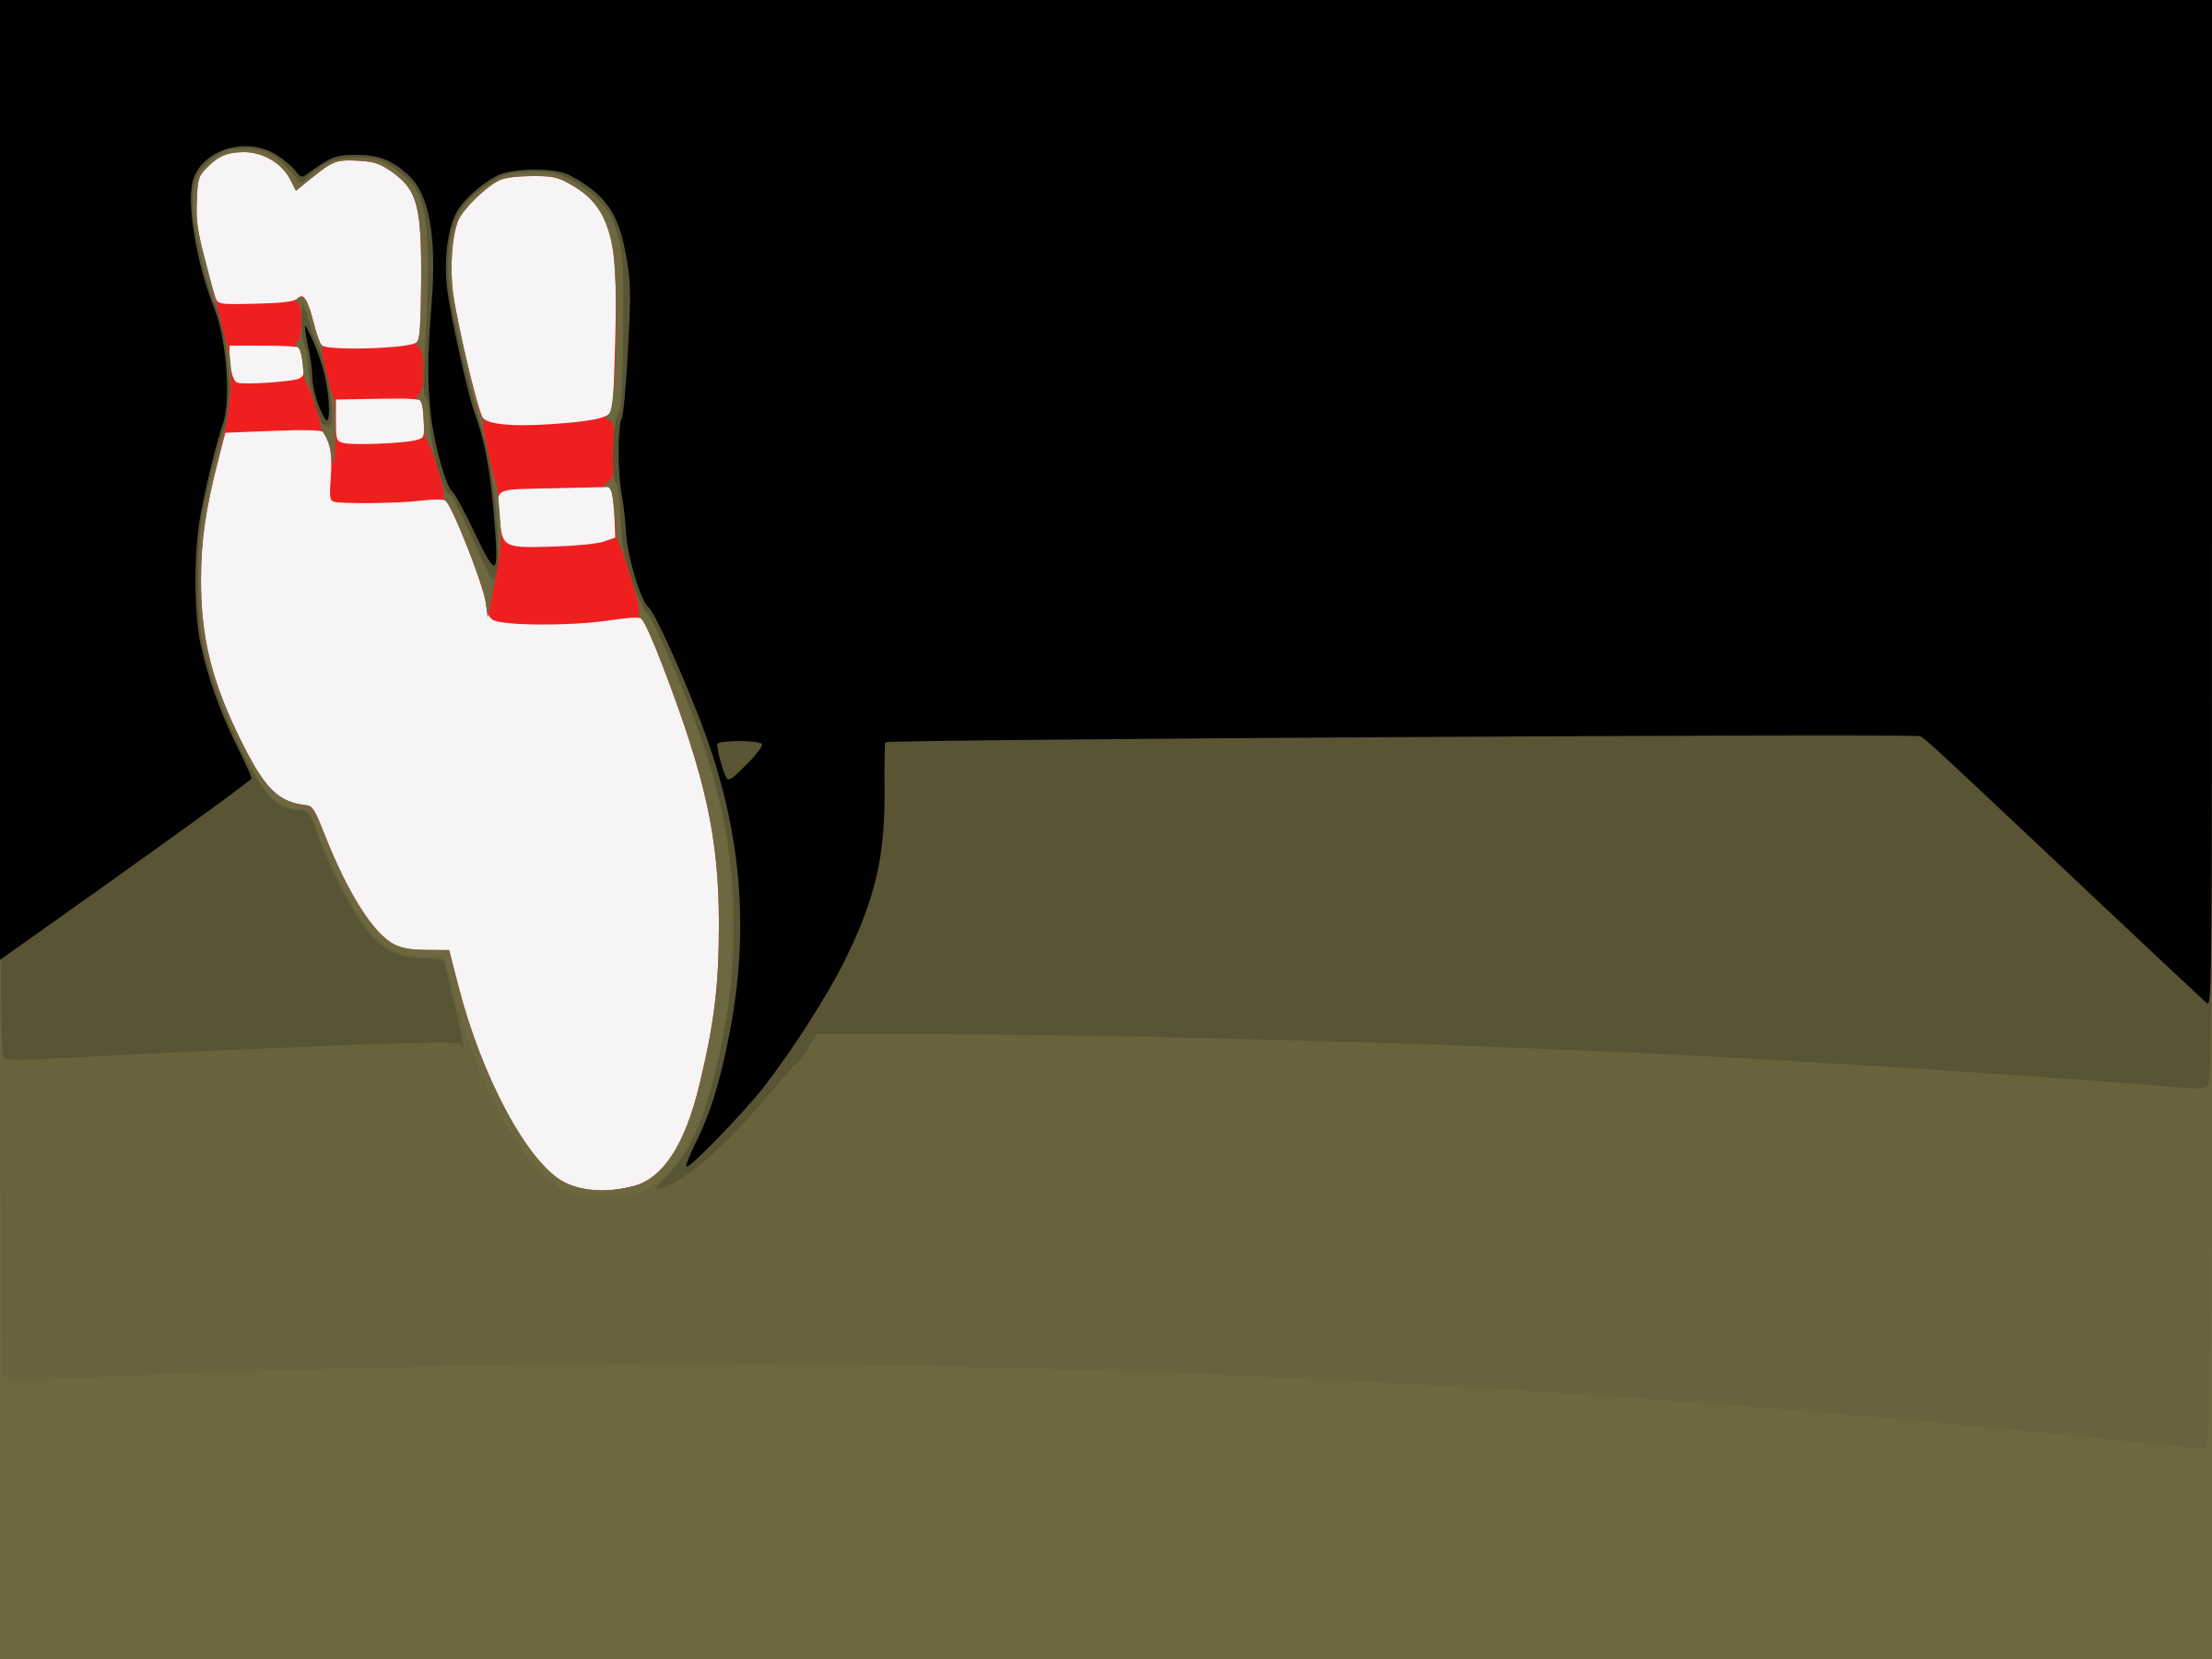 Bowling 2-4-7 Leave by mazeo